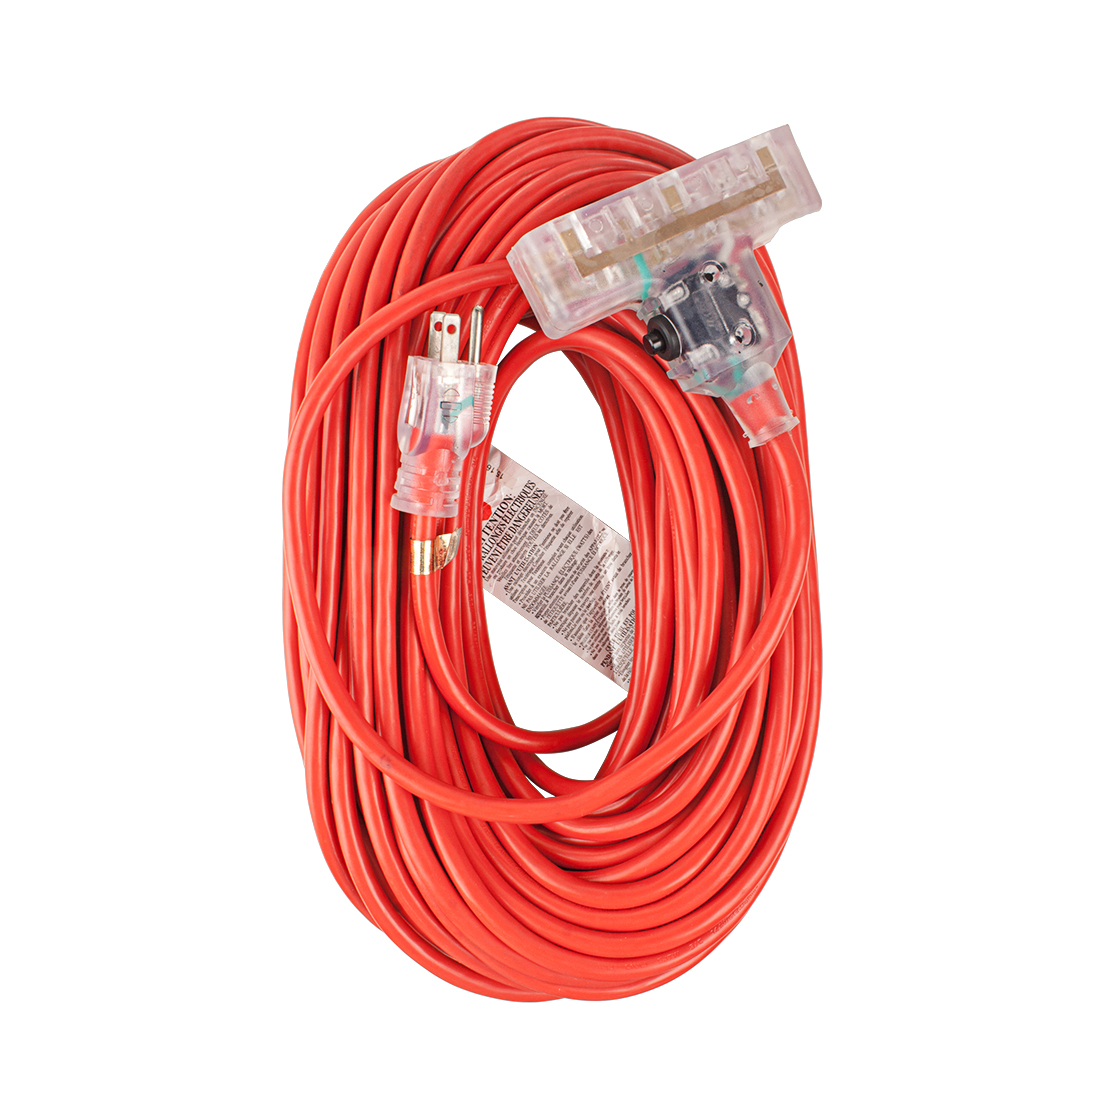 Outdoor Heavy-Duty Lighted Extension Cord 15A 14/3 SJTW 100Ft Overload Protection Red